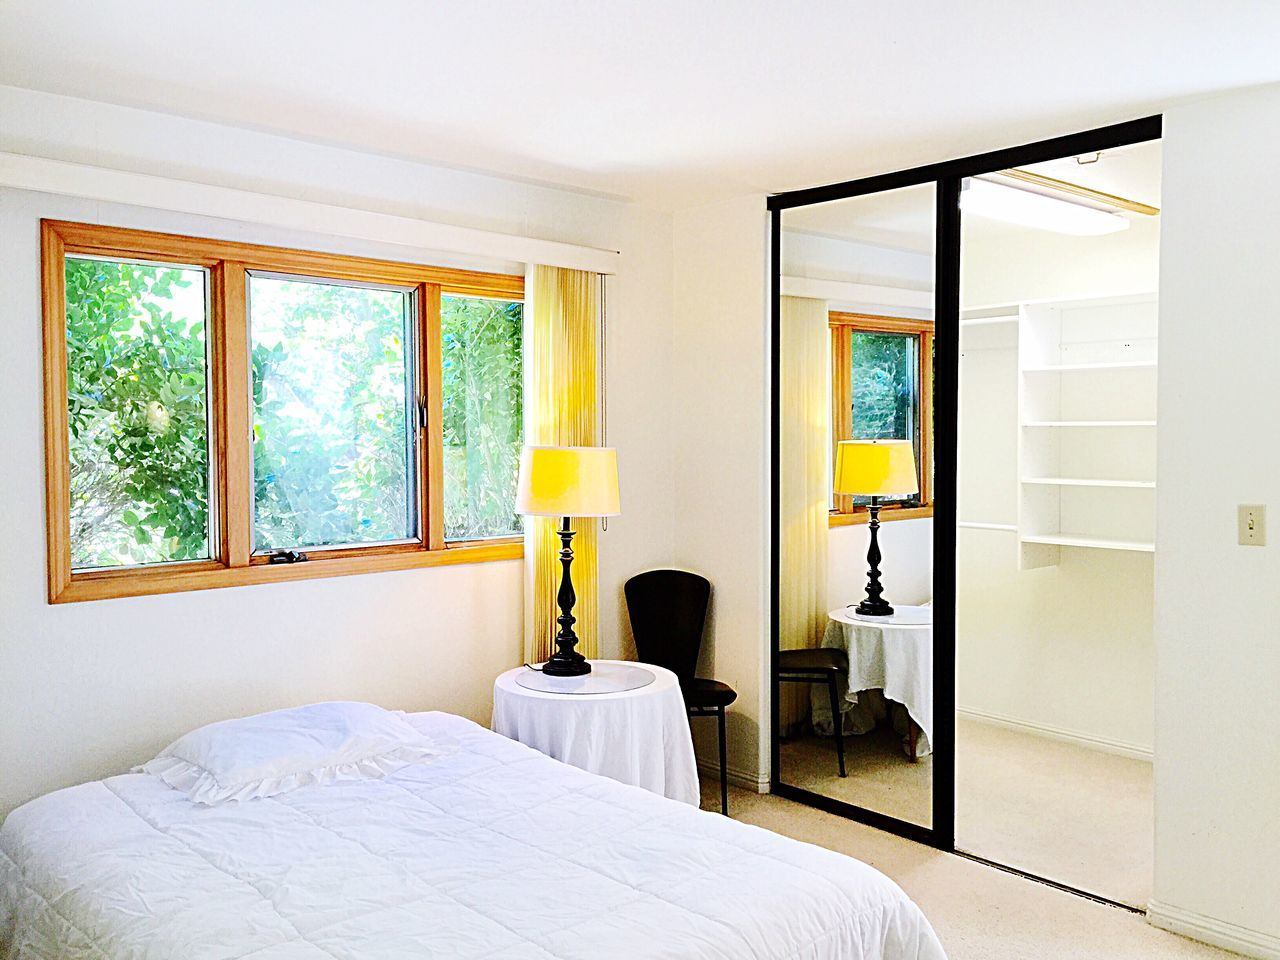 Interior Style my house Home House Room Bed Mirror Window Trees Closet Walkin Closet Shelves Build In Shelves Architecture Interior Interior Design Building Design Color Palette Eyeemphoto